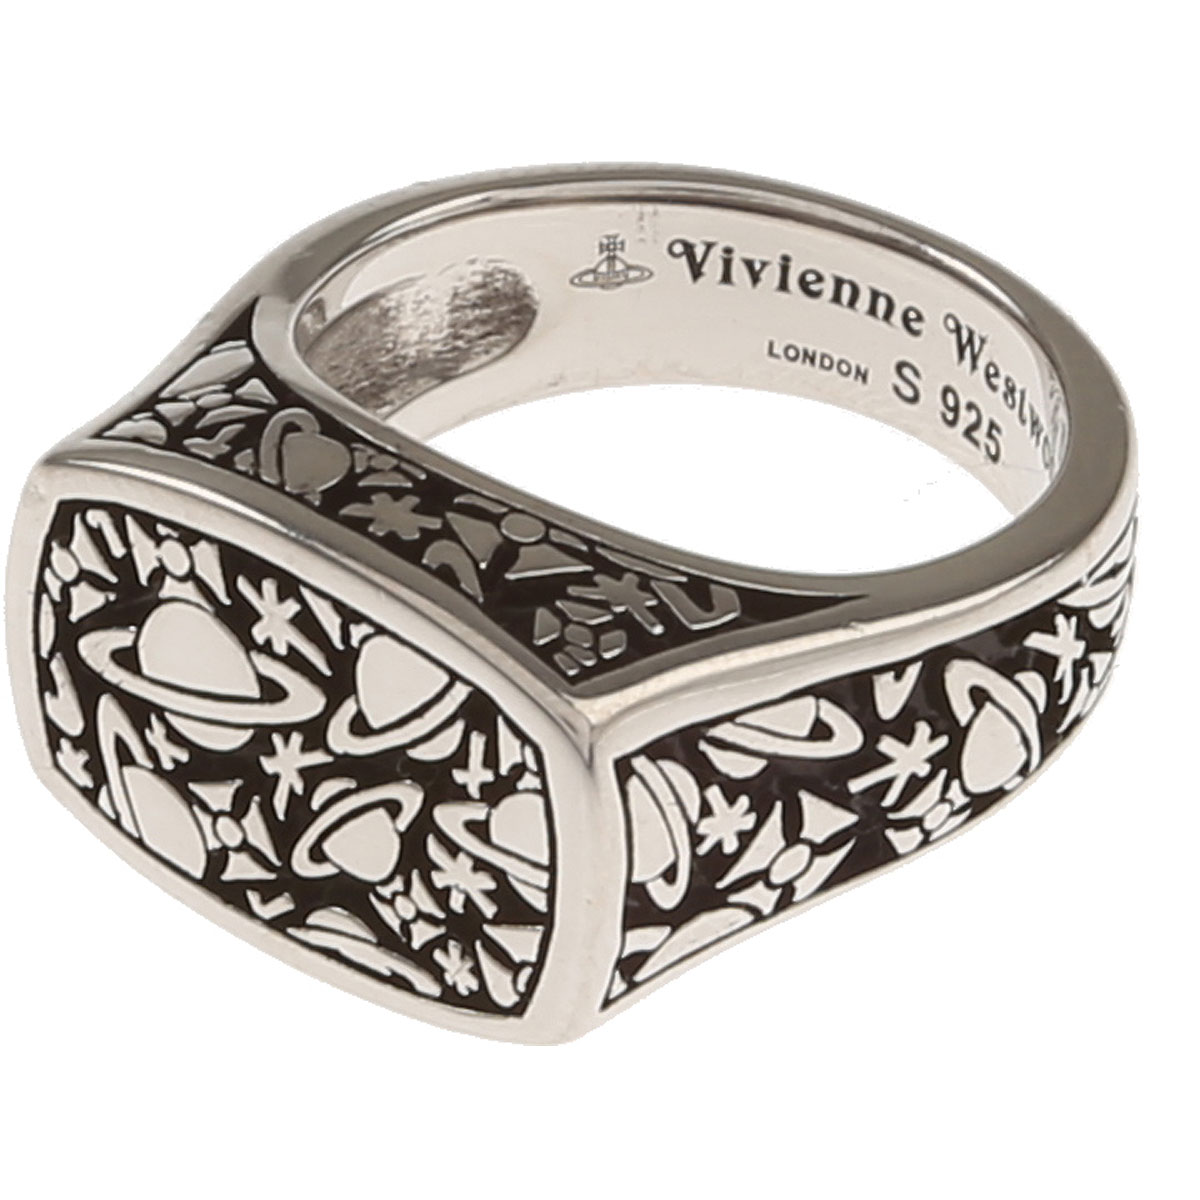 Image of Vivienne Westwood Ring for Men, Silver, Sterling Silver, 2017, Small Medium Large